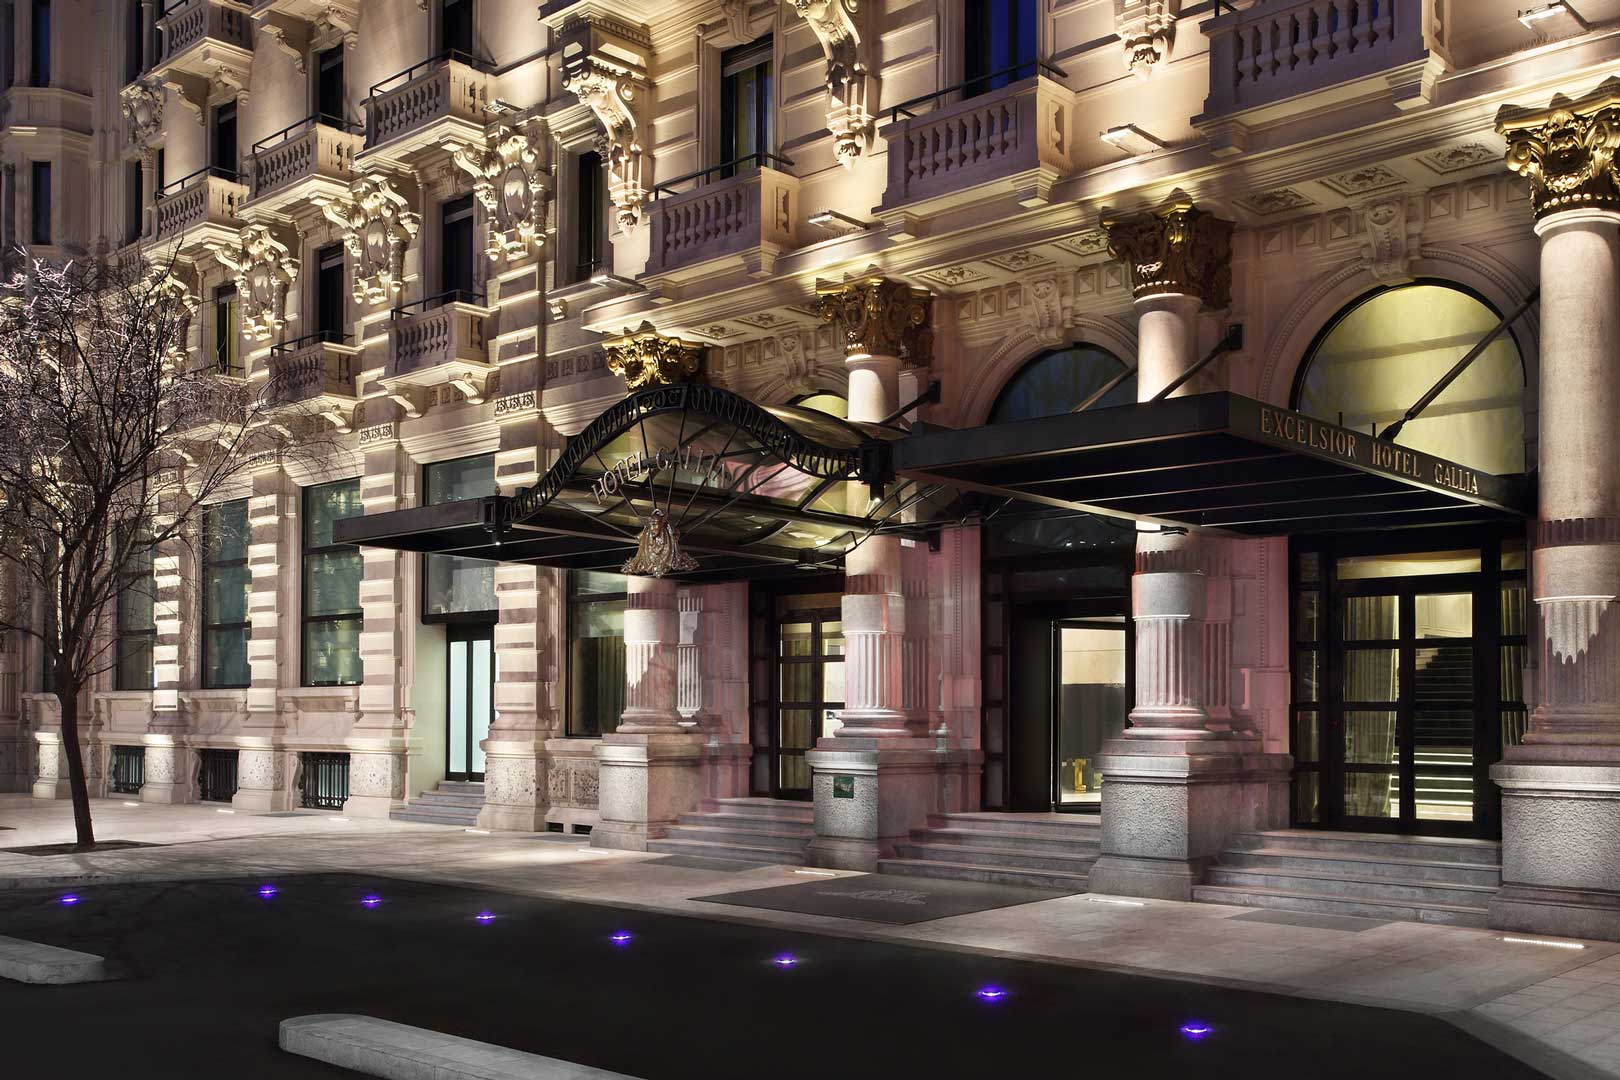 Excelsior hotel gallia flawless milano the lifestyle guide for Hotel design milano centro